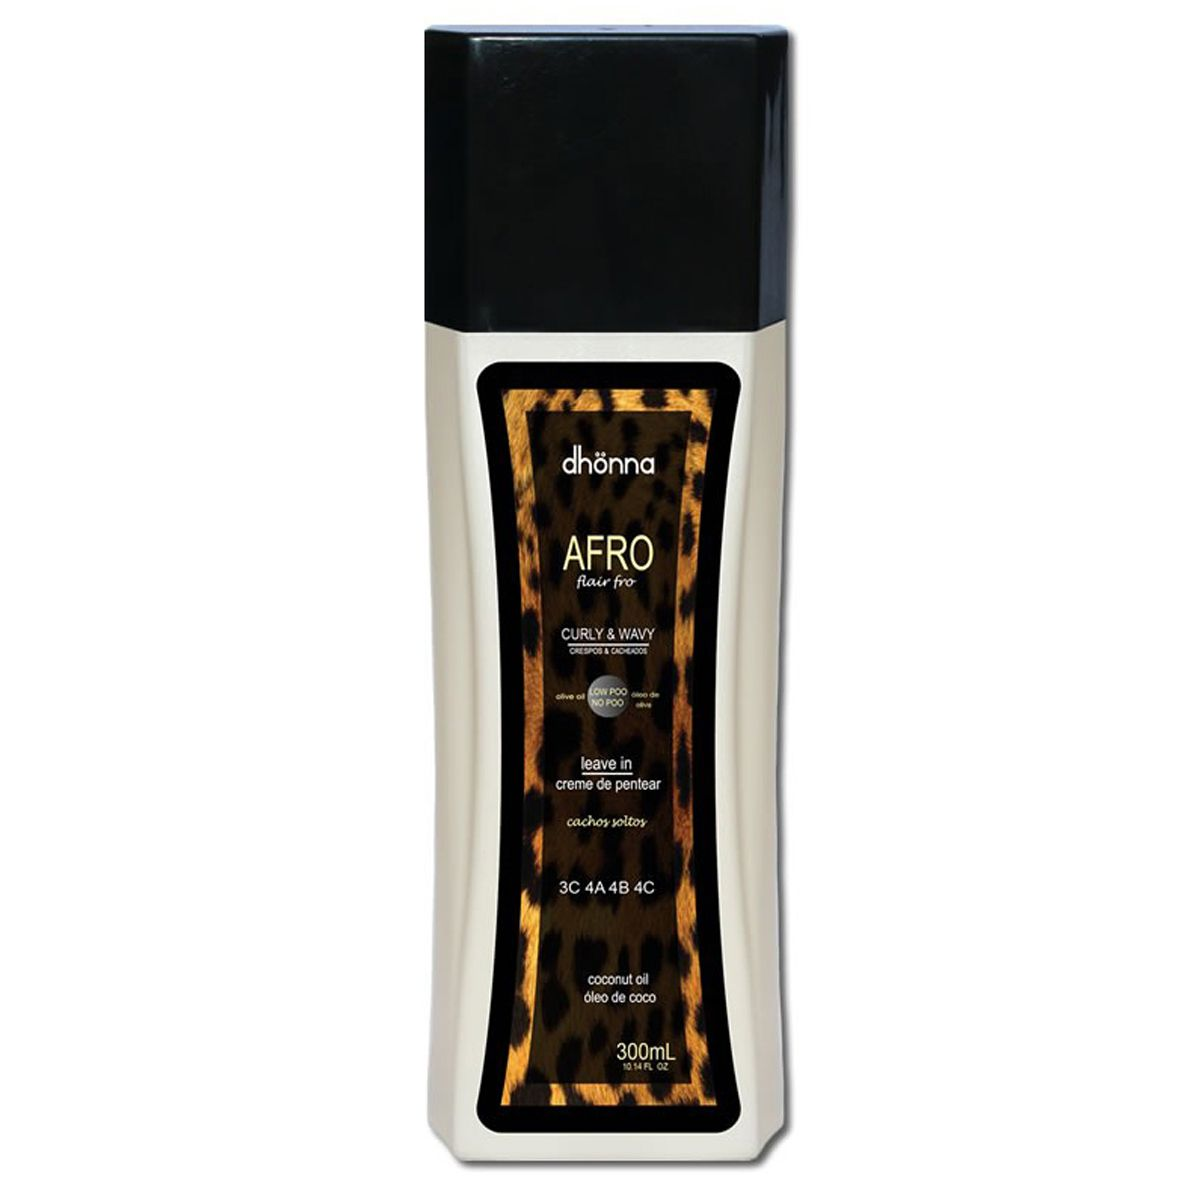 Dhonna - Afro  - Leave-in - 3C 4A 4B 4C -  300ml